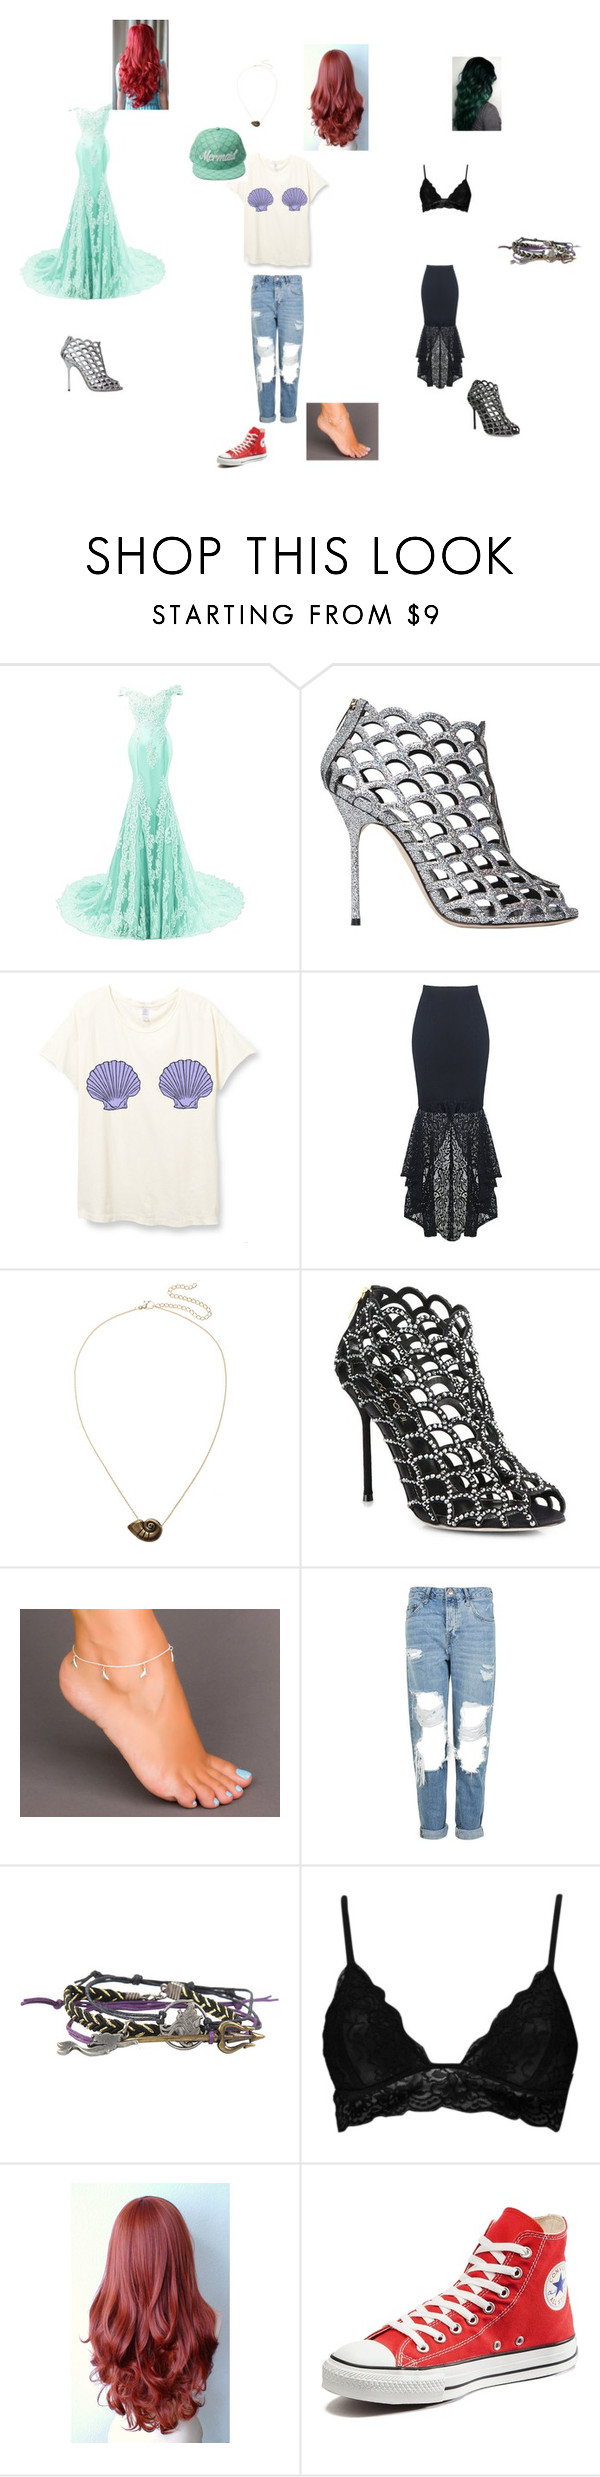 """Ariel"" by fangirl-24 on Polyvore featuring NAMI, Sergio Rossi, Disney, Topshop, Boohoo, Converse, Prom, rebel, disney and casualoutfit"